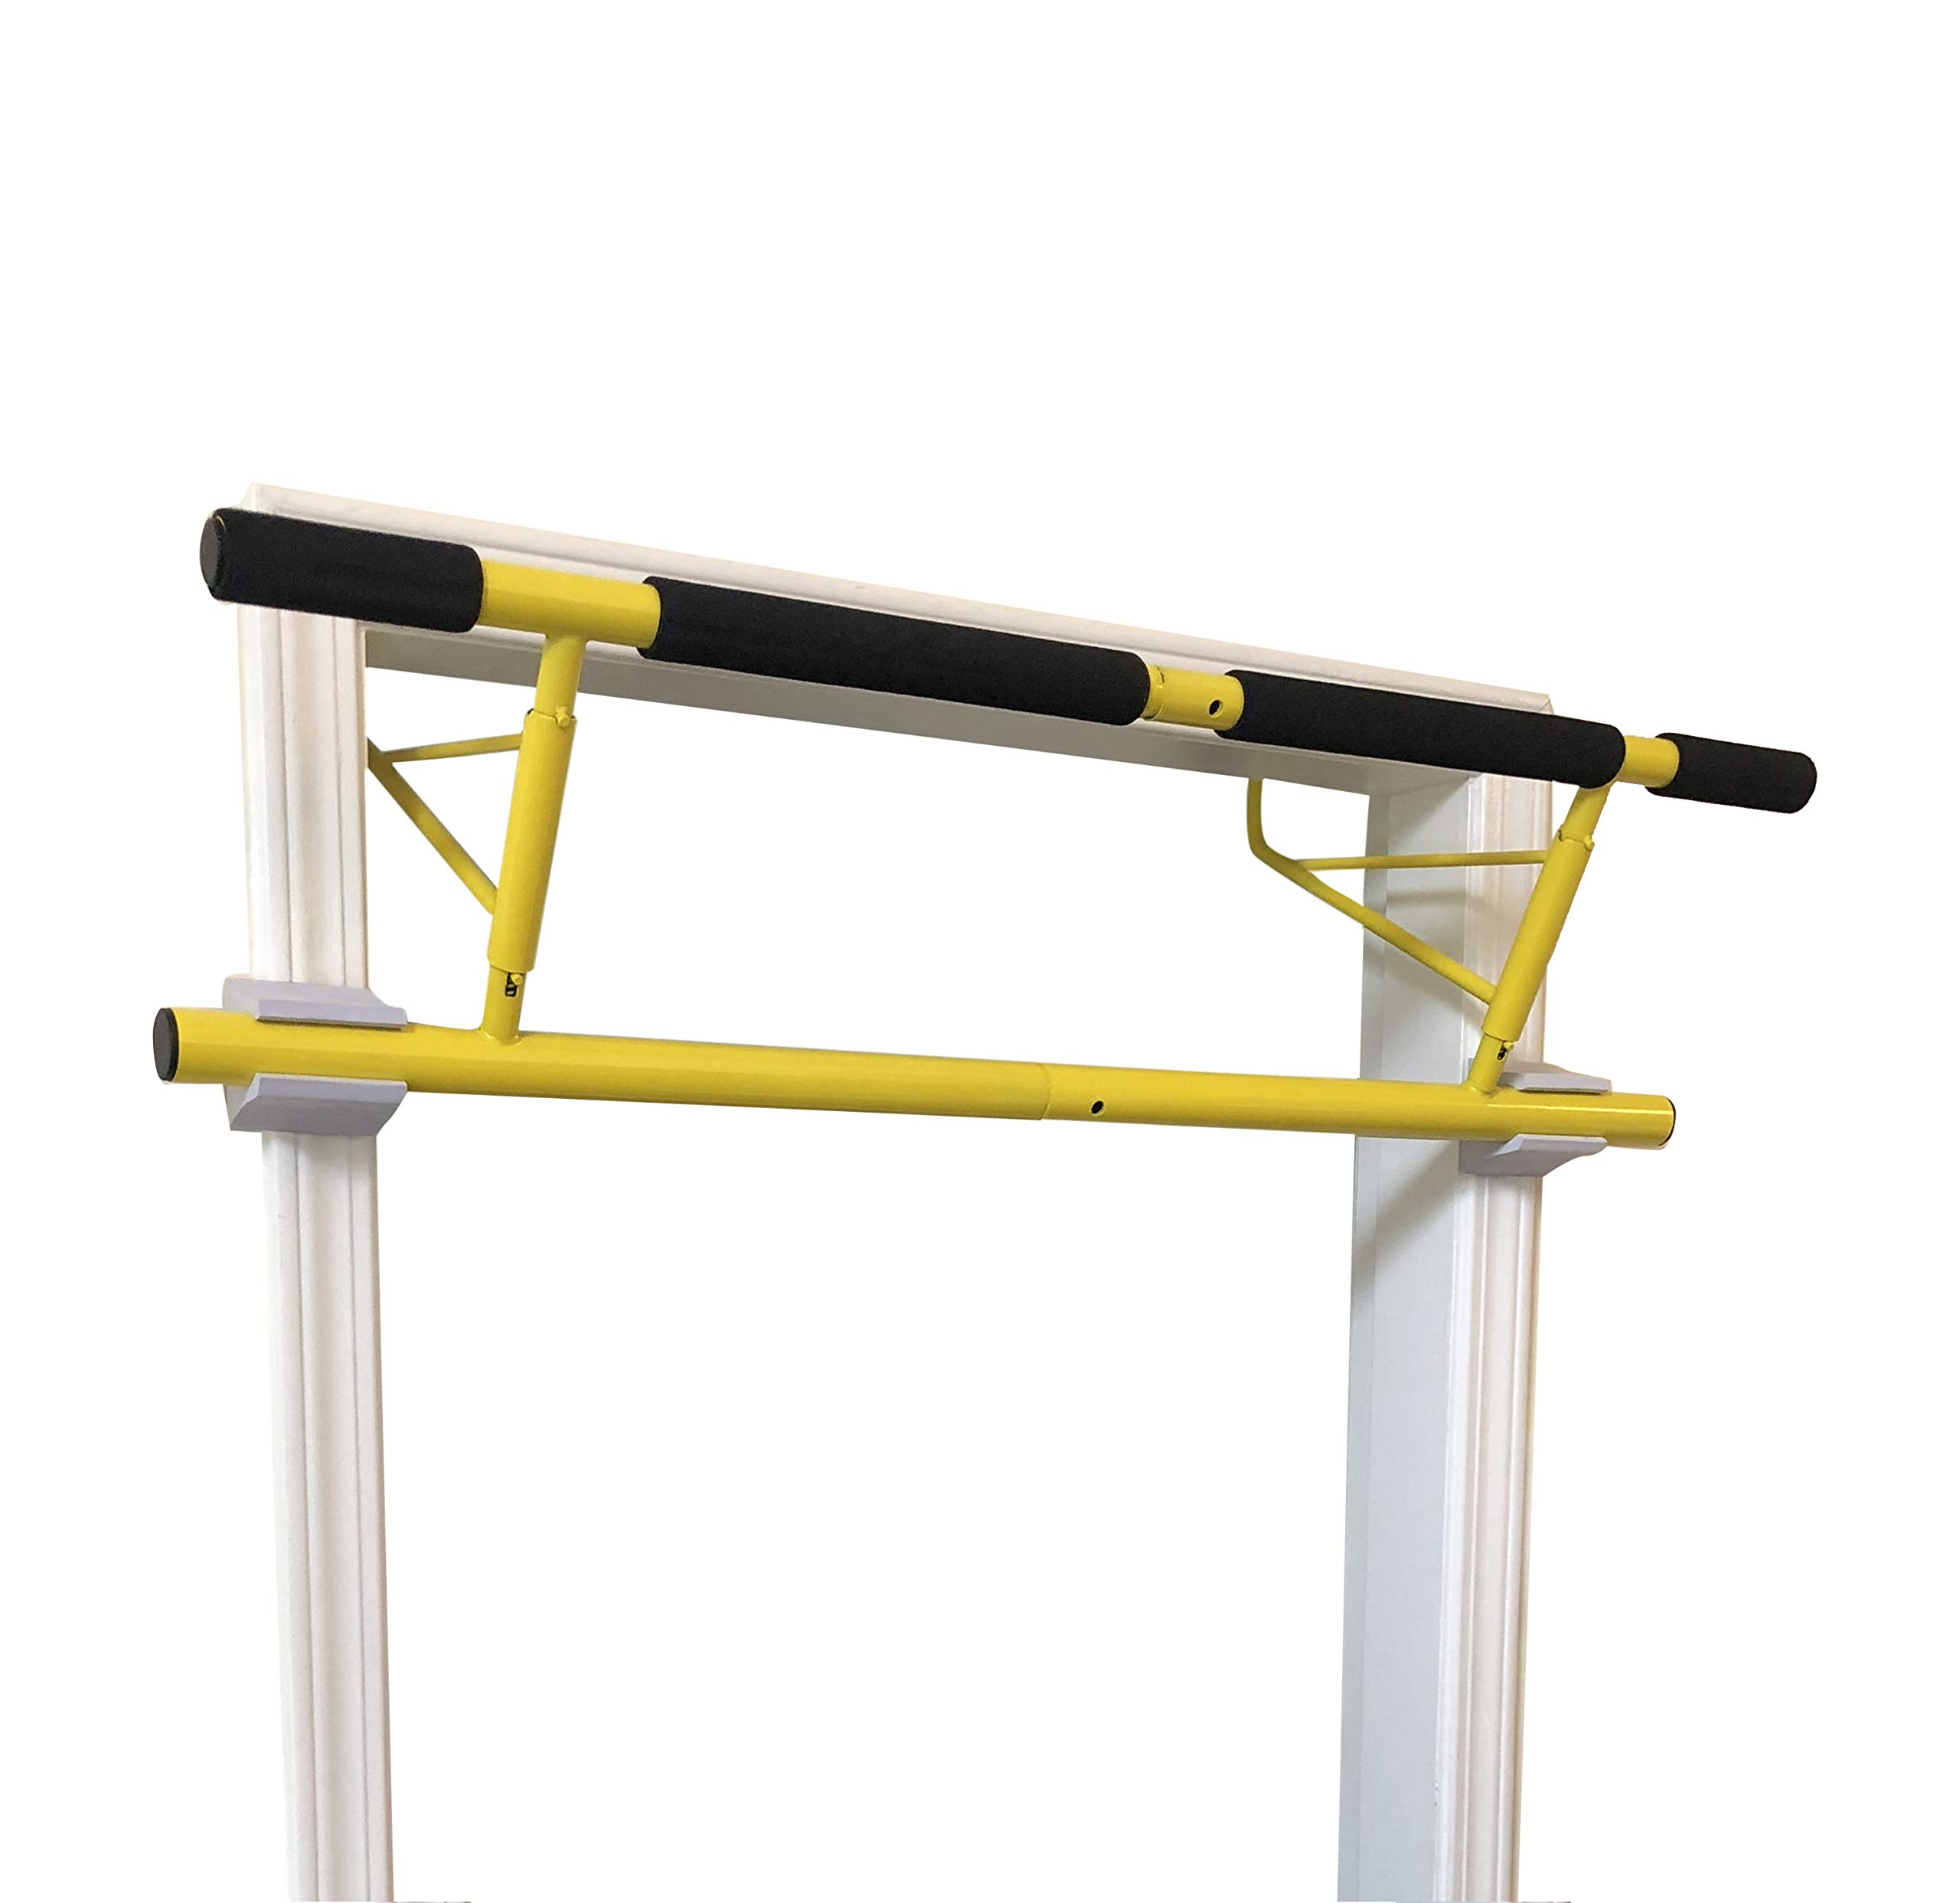 SHAMROCK TRIPLE GYM Pull Up Bar, No Assembly Required, Folds Flat & Comes Apart for Travel Or Storage, USA Shipping and Warranty (Yellow)